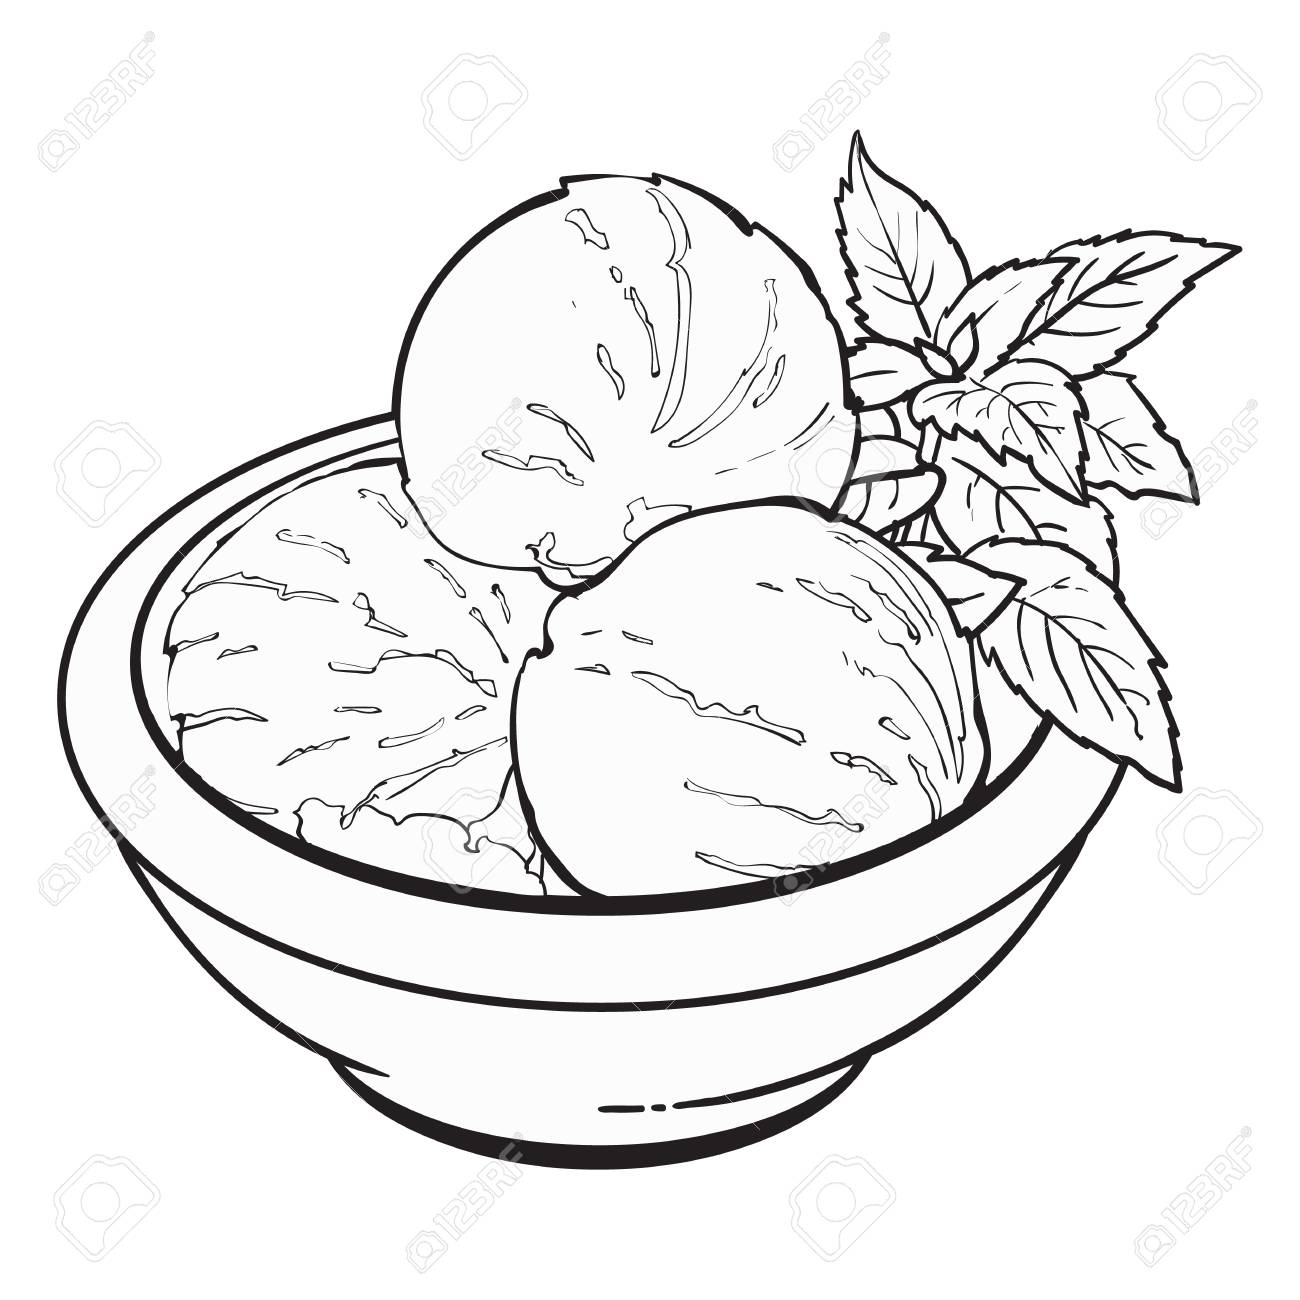 Hand Drawn Black And White Contour Bowl Of Matcha Tea Ice Cream ... for Bowl Of Ice Cream Clipart Black And White  28cpg